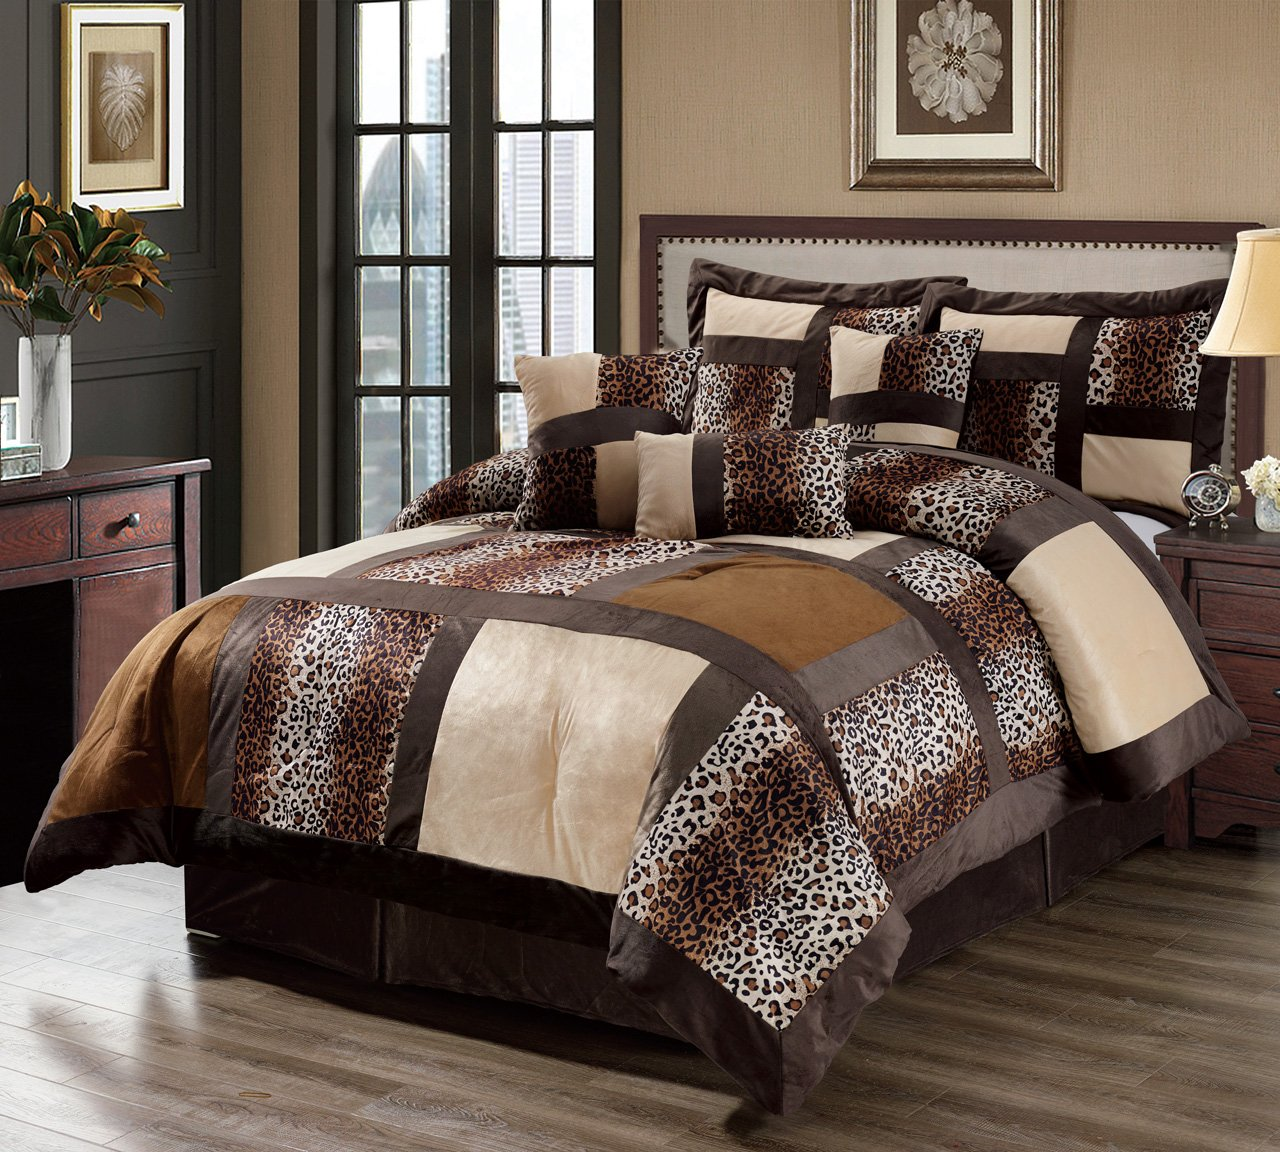 11 Piece Queen Leopard Patchwork Faux Fur Microfiber Bed in a Bag Set